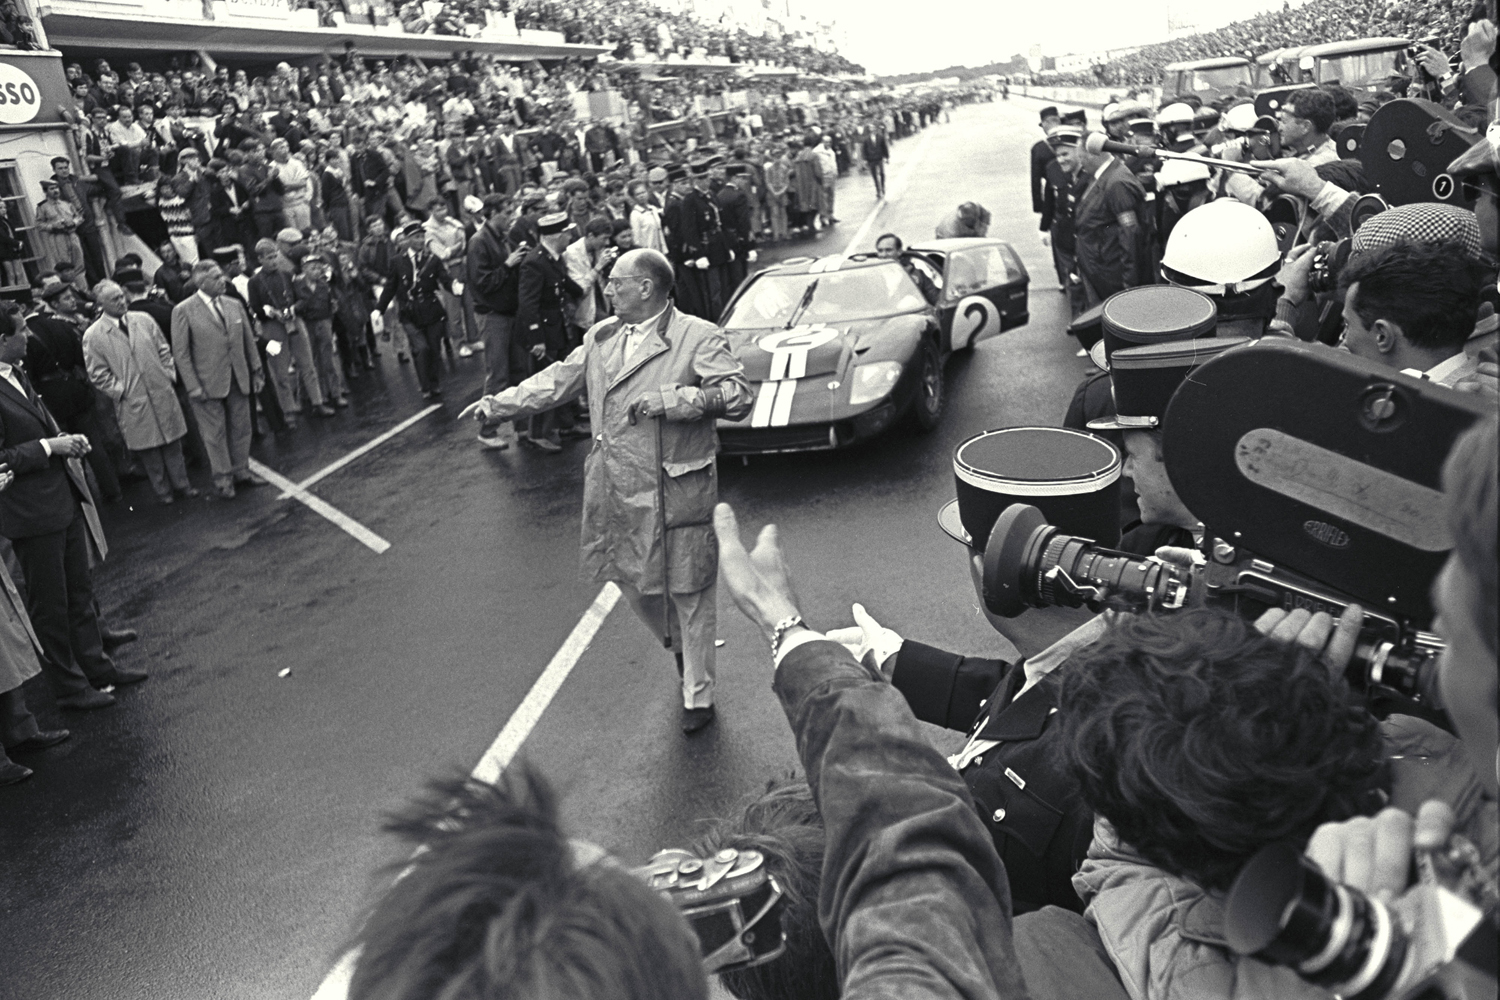 Ford GT40 - Bruce McLaren - victory 24 Hours of Le Mans - 1966 - photo via Ford Motor Company